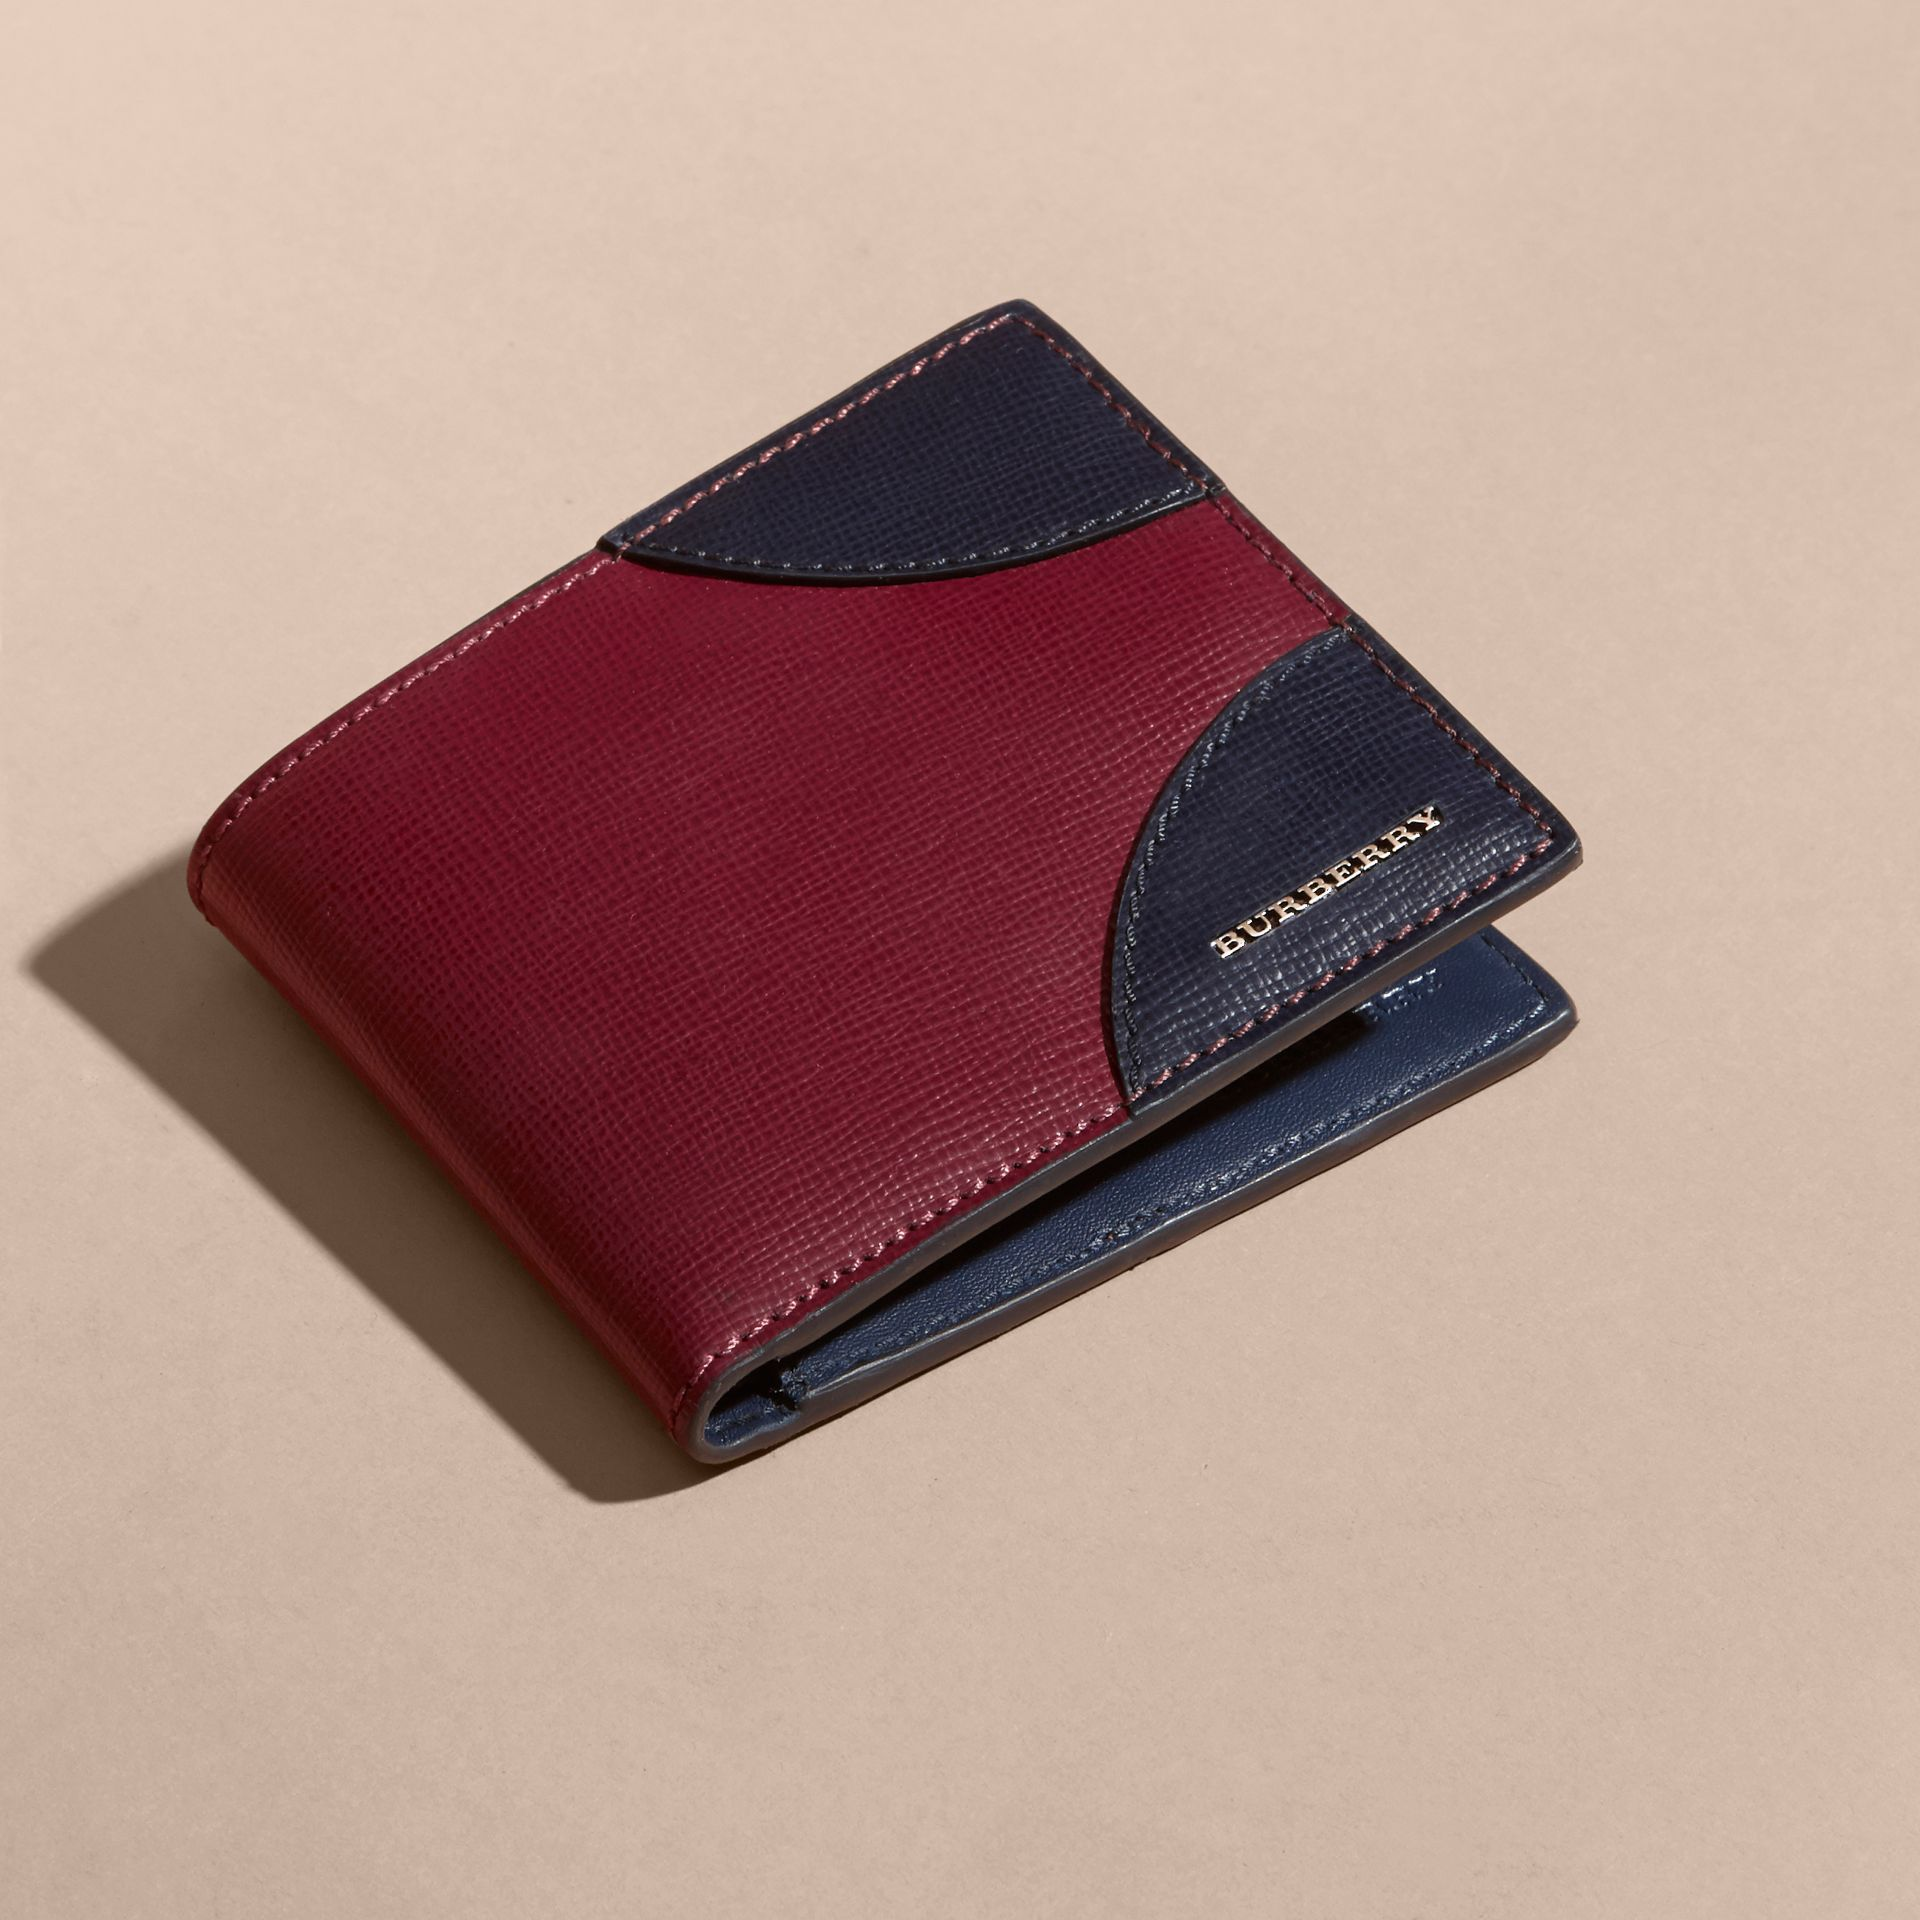 Two-tone London Leather International Bifold Wallet in Burgundy Red - gallery image 6